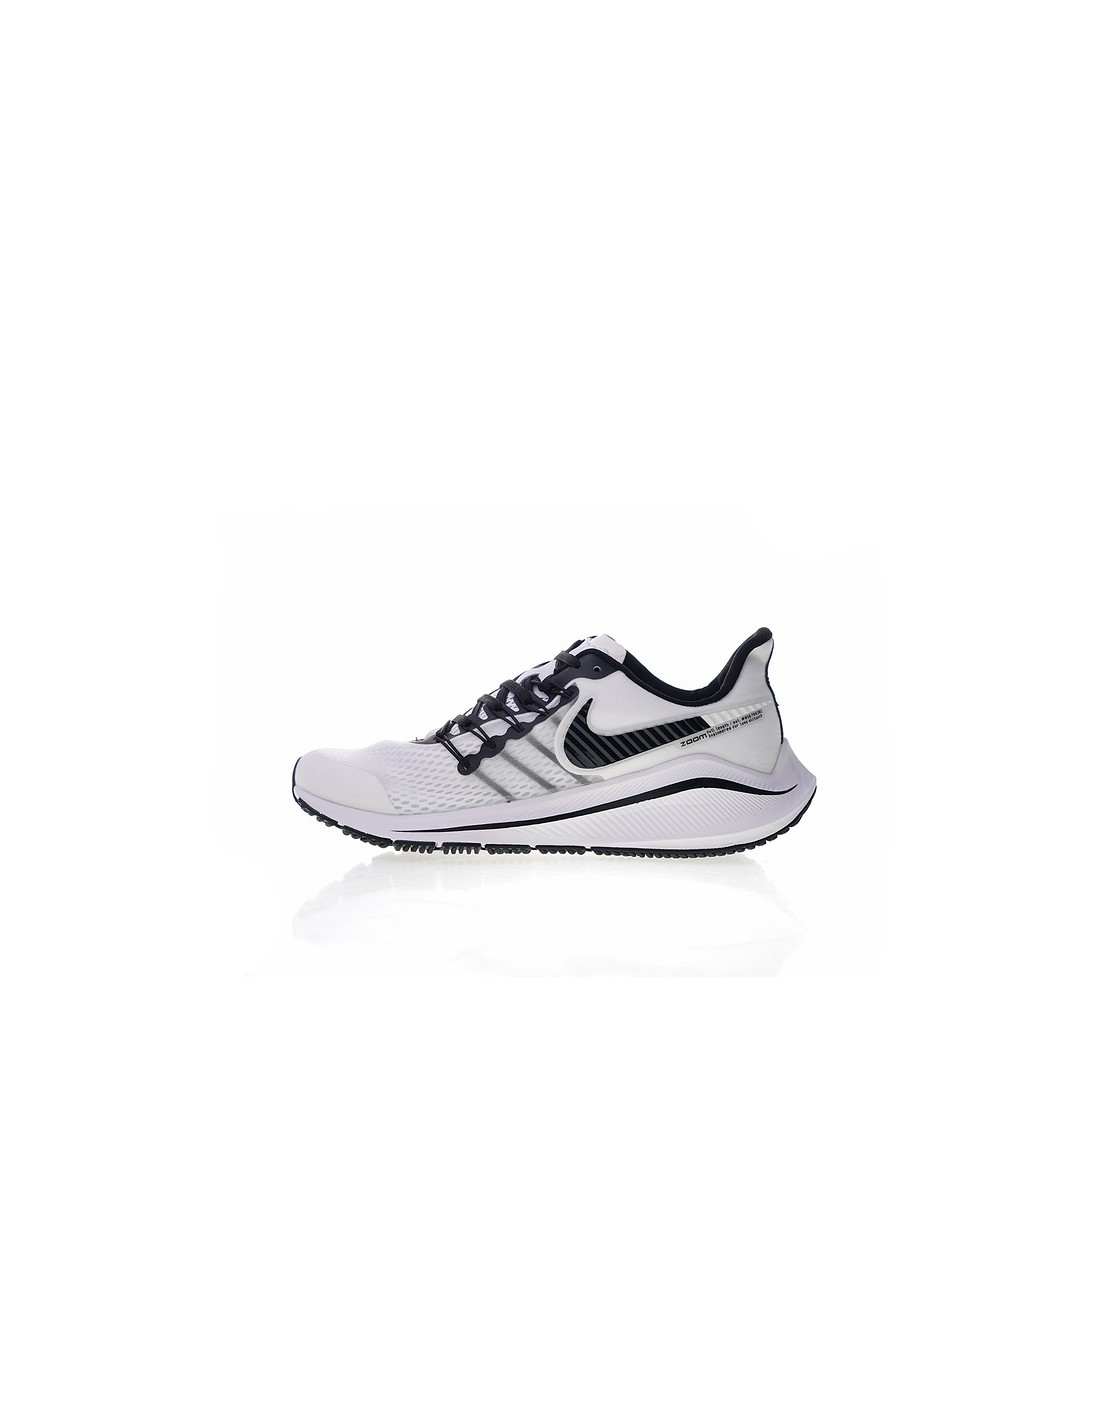 c9b76b8b19f92 Nike Air Zoom Vomero 14 Men s Shoe